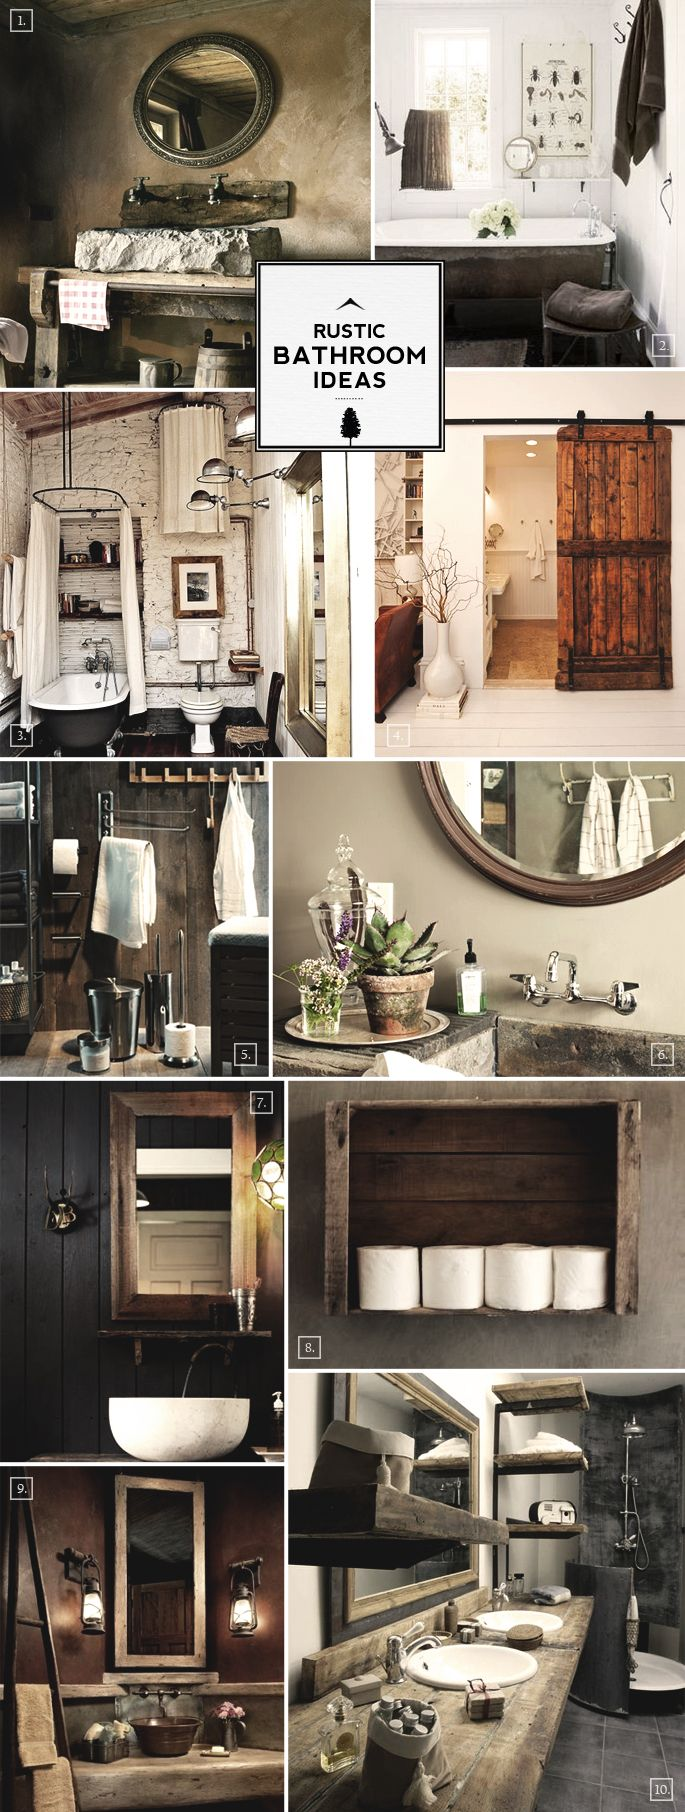 Rustic bathroom decor on pinterest pallet shelf bathroom for Bathroom accessories ideas